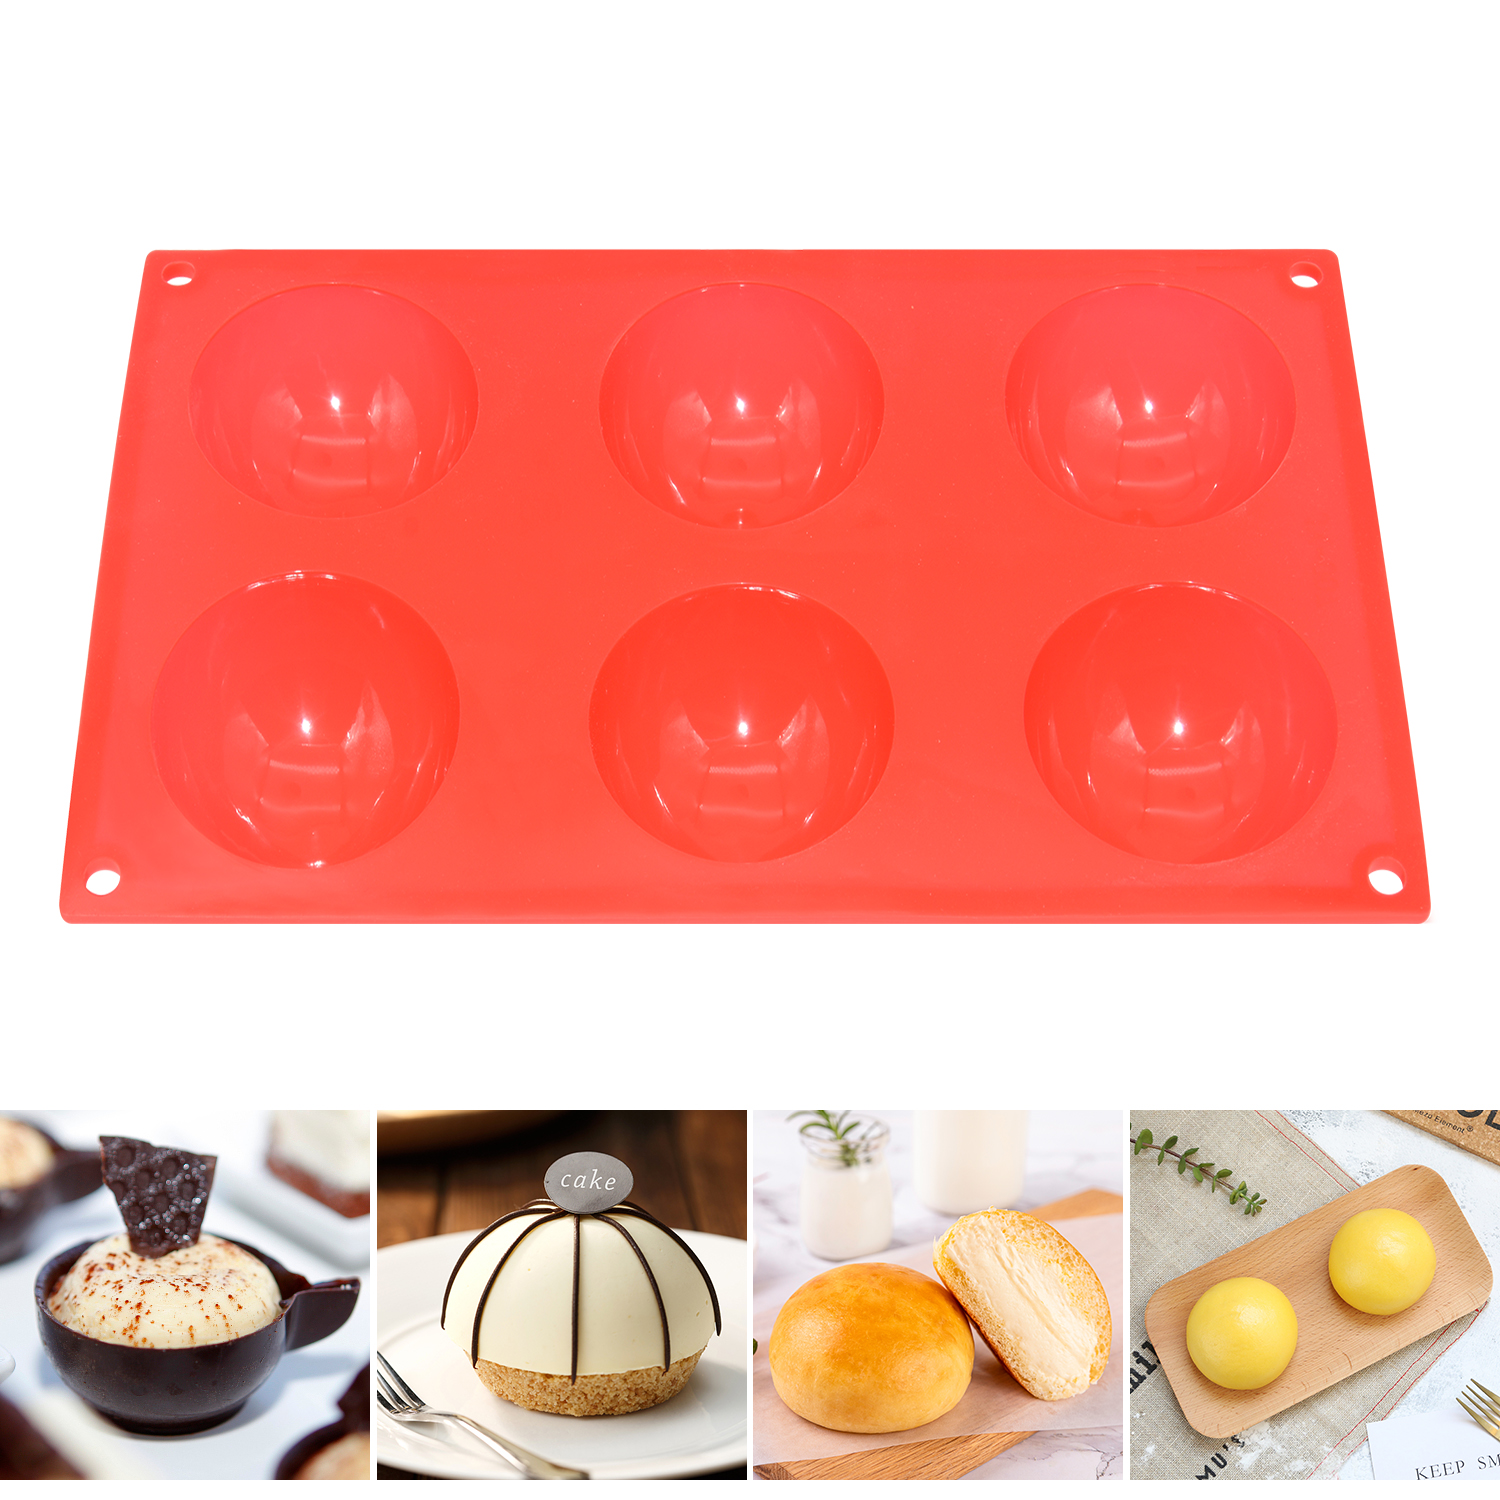 Benhaida Silicone 6 Holes Domed Round Shape Baking Mold Cake, Hemispherical Chocolate Jelly Pudding Baking Mold